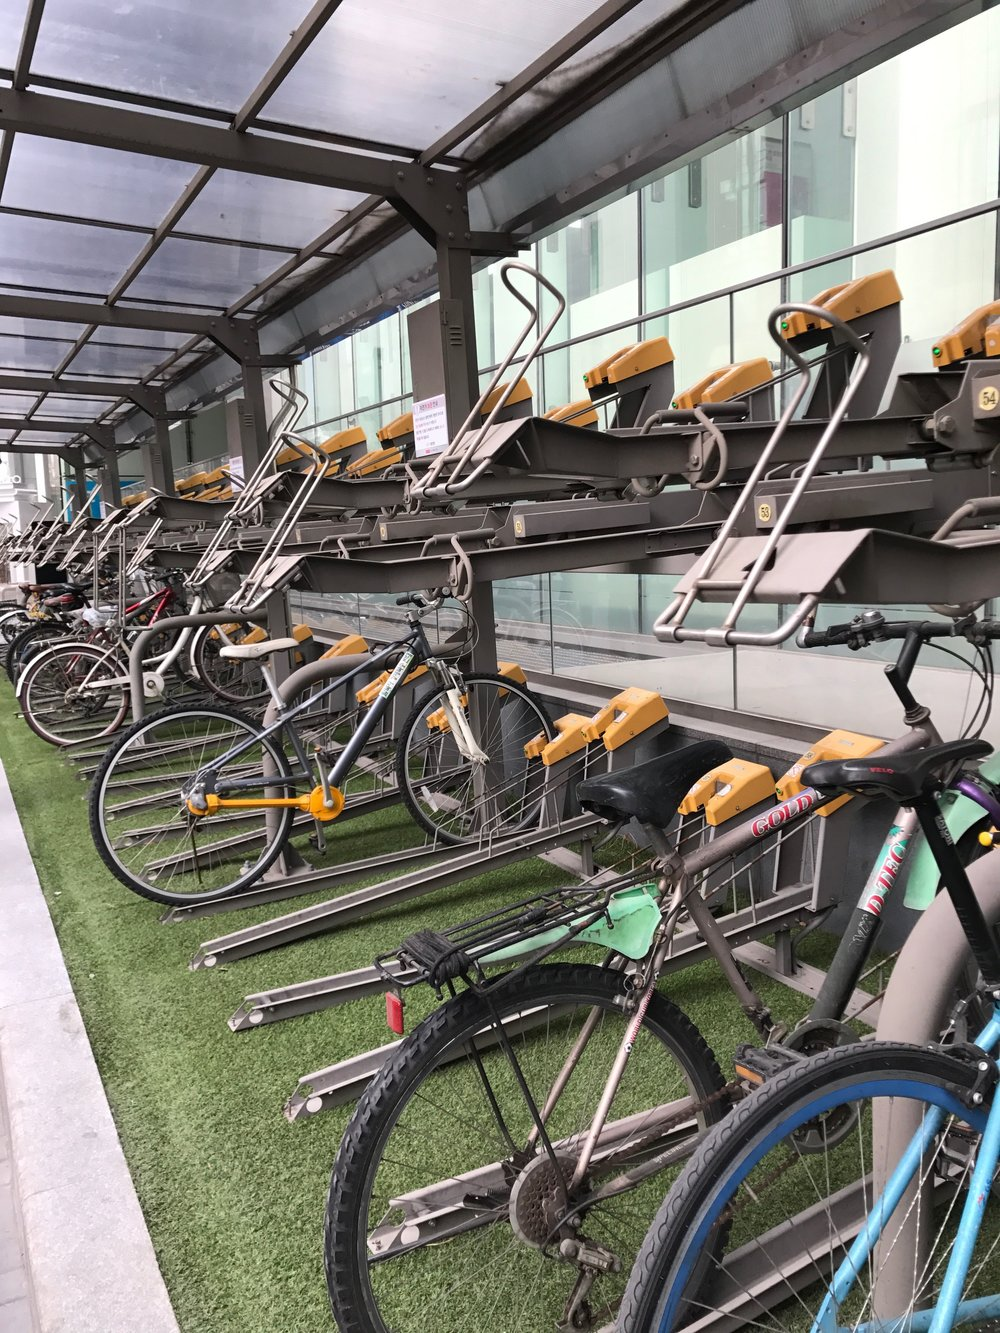 Bicycle racks in Seoul, Korea. // Source: Deland Chan